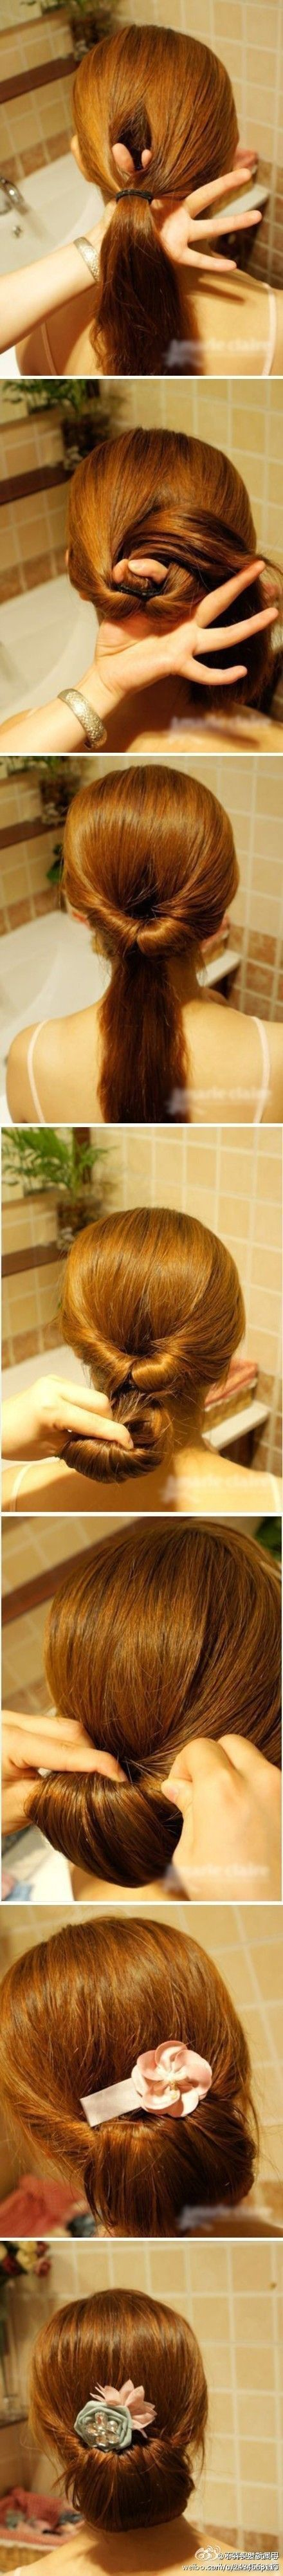 nice: Hair Ideas, Wedding Hair, Long Hair, Hairstyle, Hair Style, Ponies Tail, Updo, Hair Buns, Low Buns